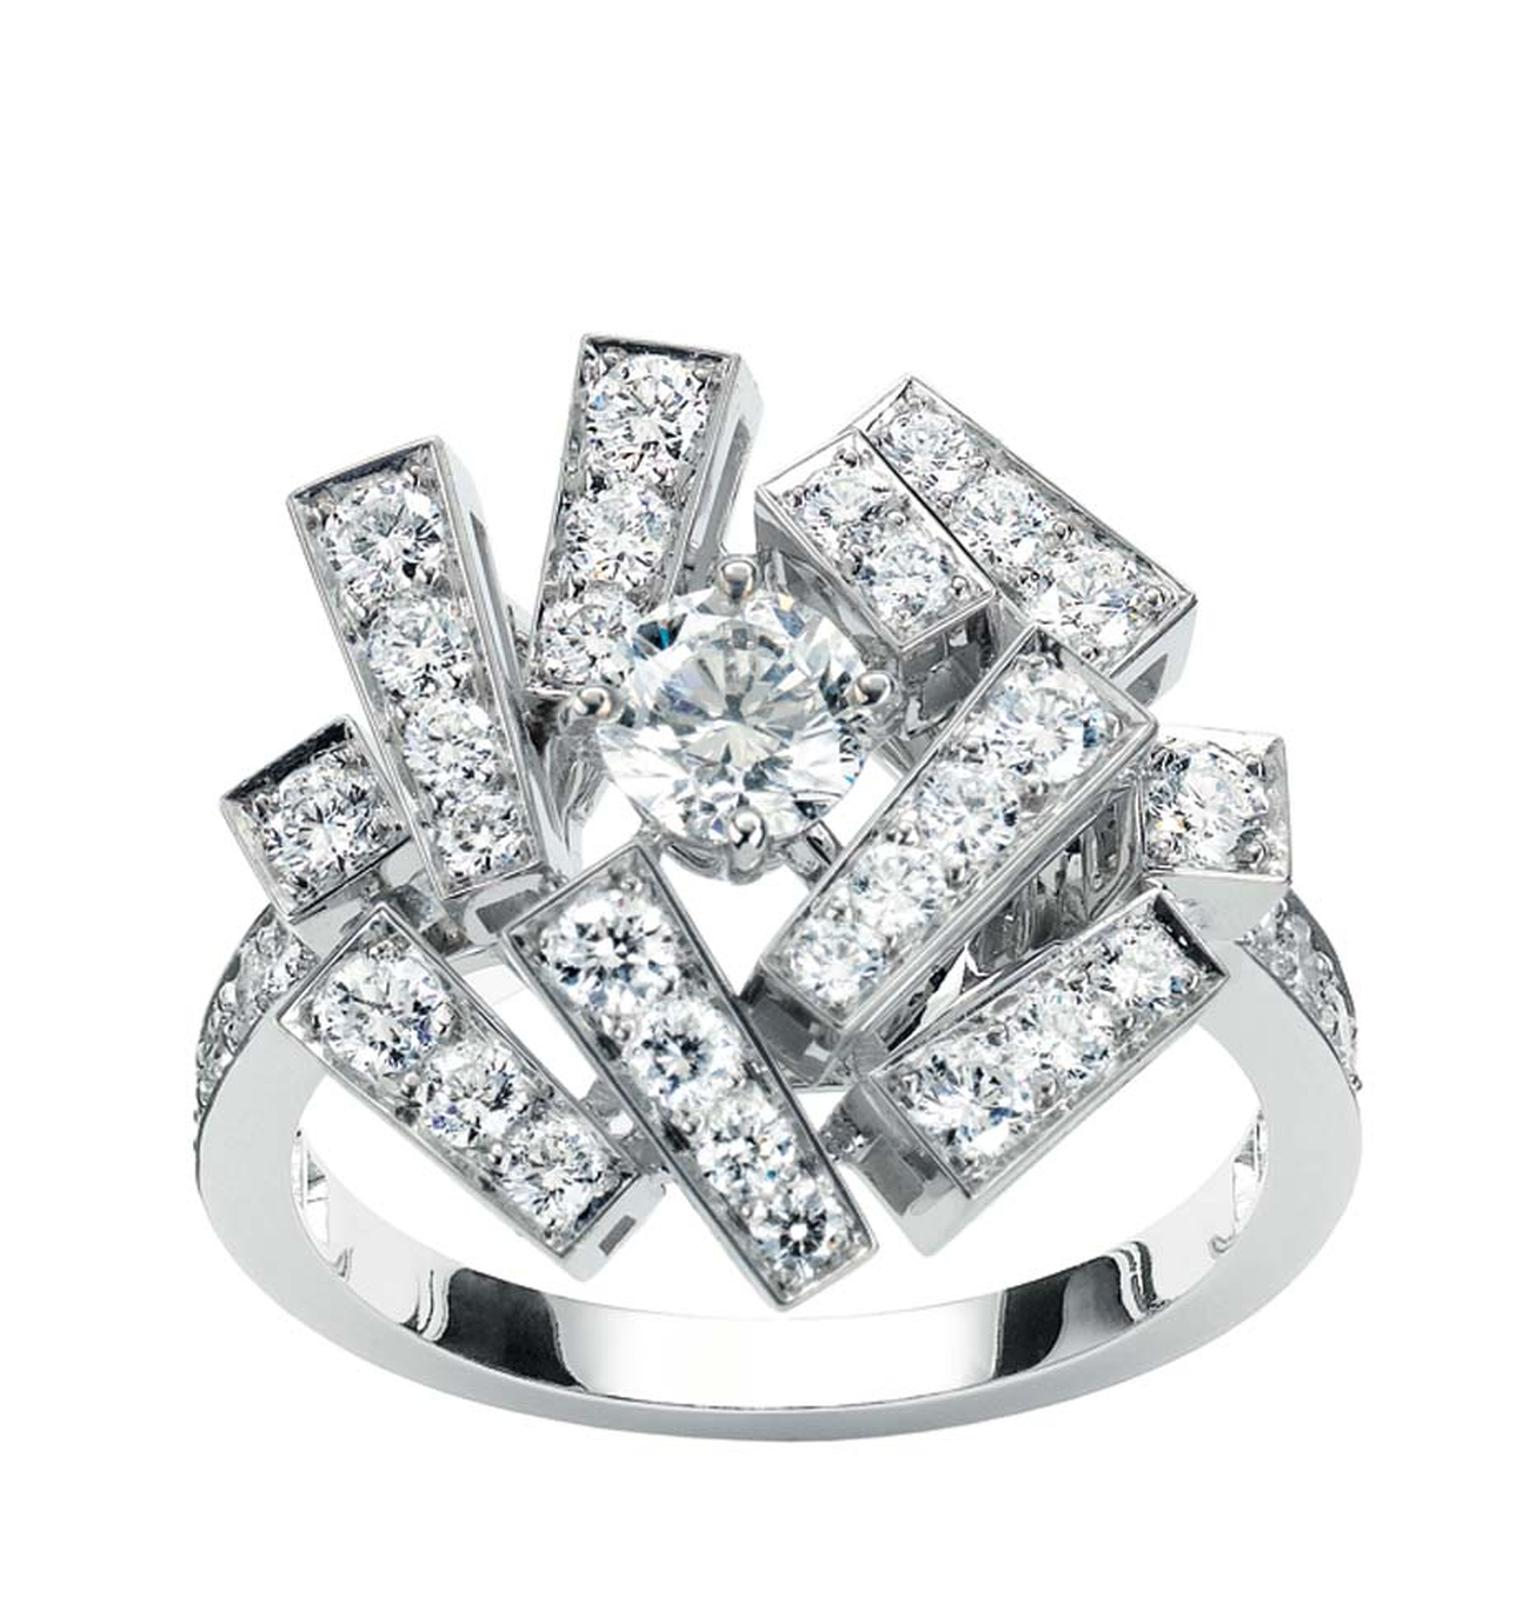 Chaumet Le Grand Frisson diamond ring (£11,720).